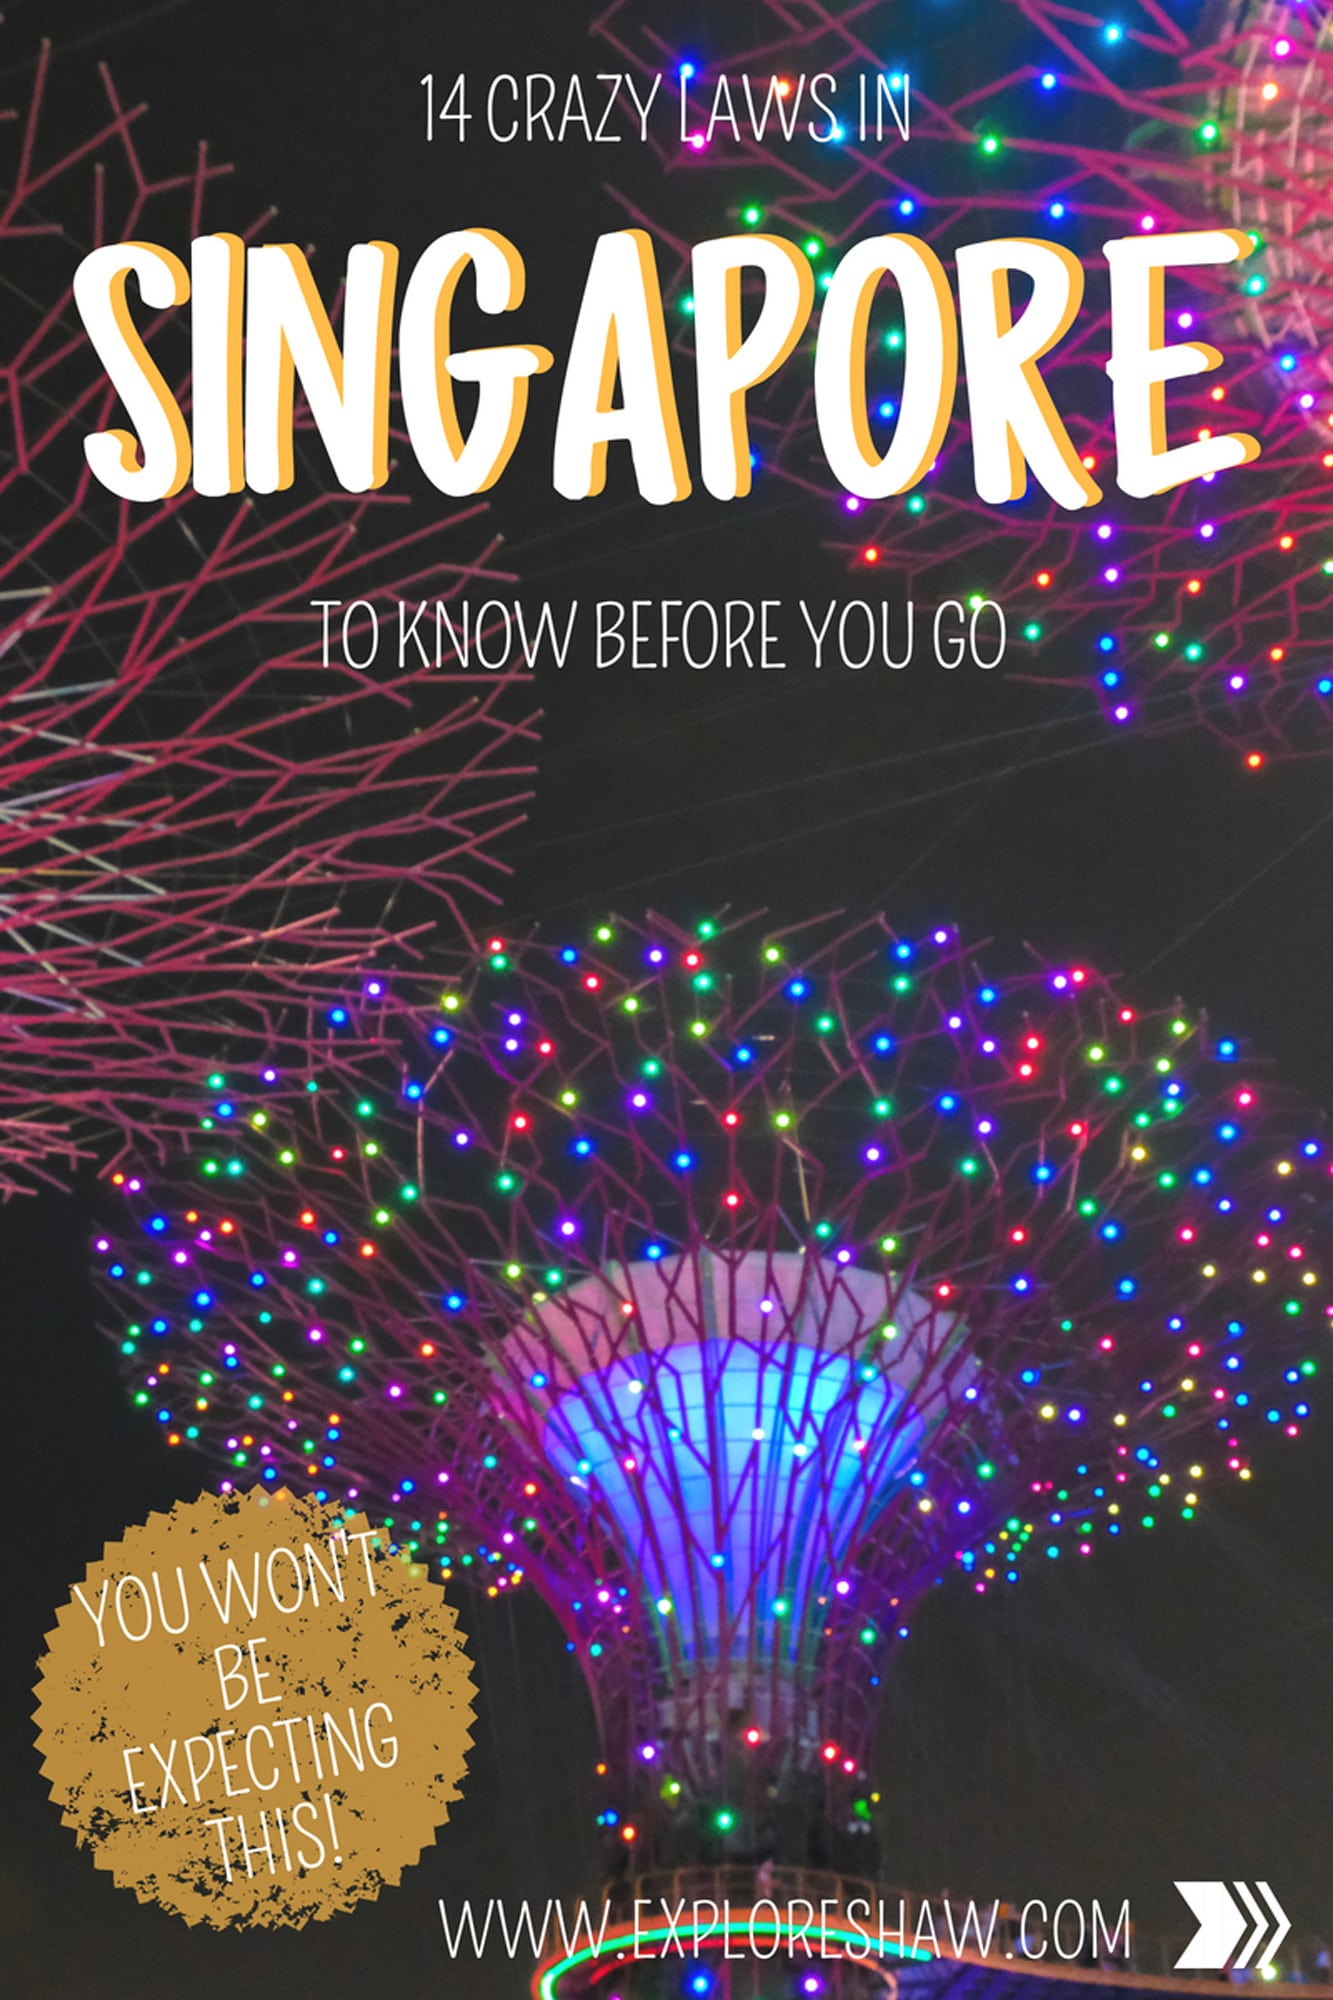 14 of the most unique and crazy Singapore laws that you should know before you go to avoid any trouble on your visit.